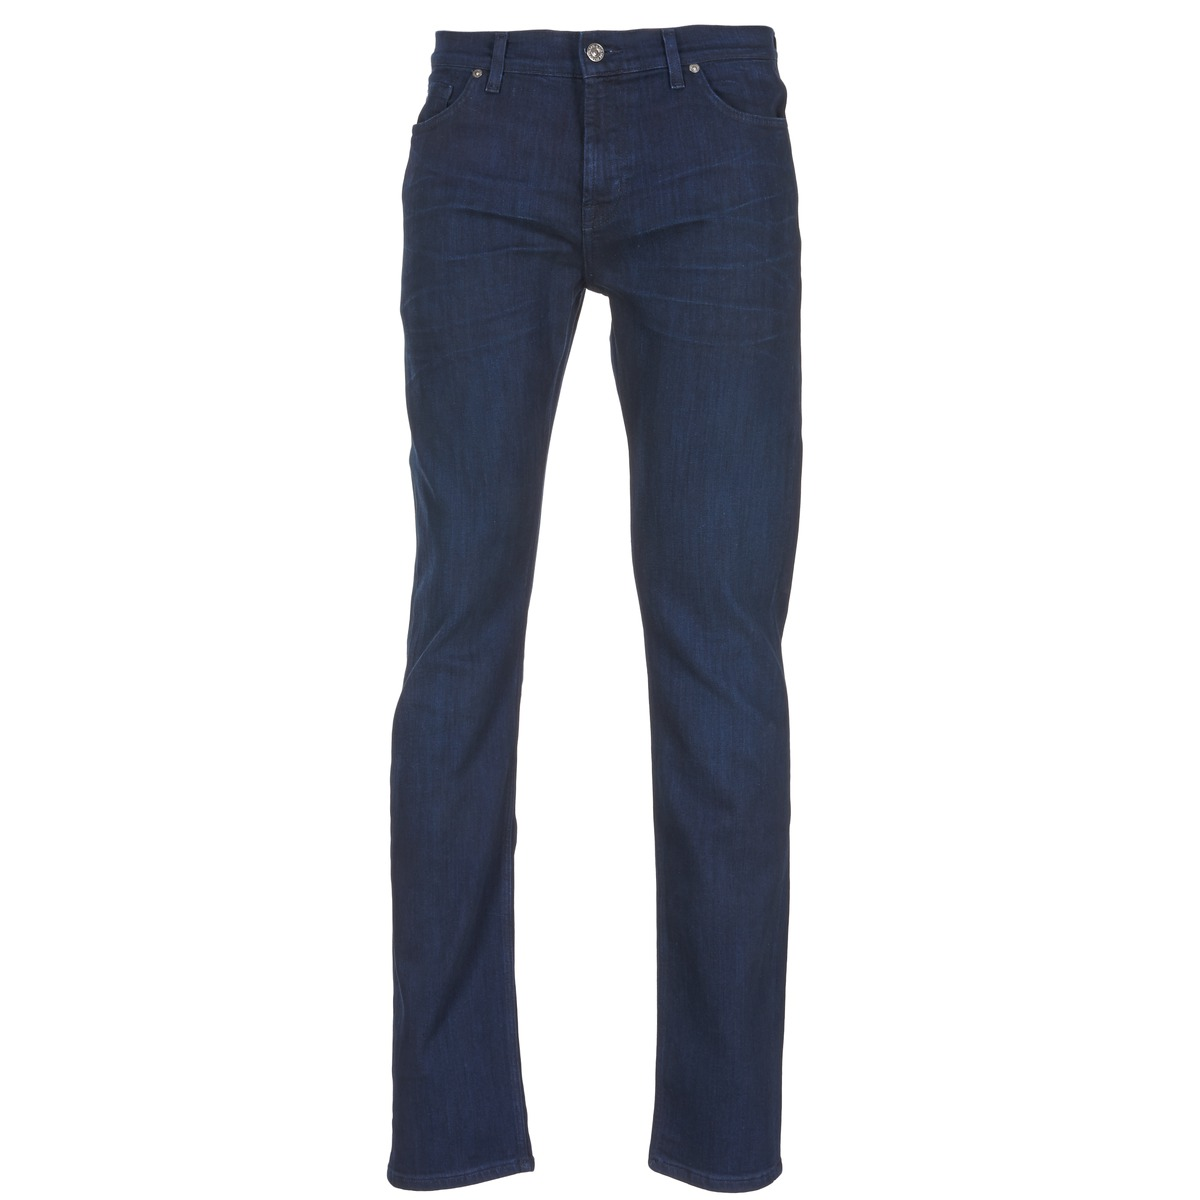 7 for all Mankind RONNIE WINTER INTENSE Blau